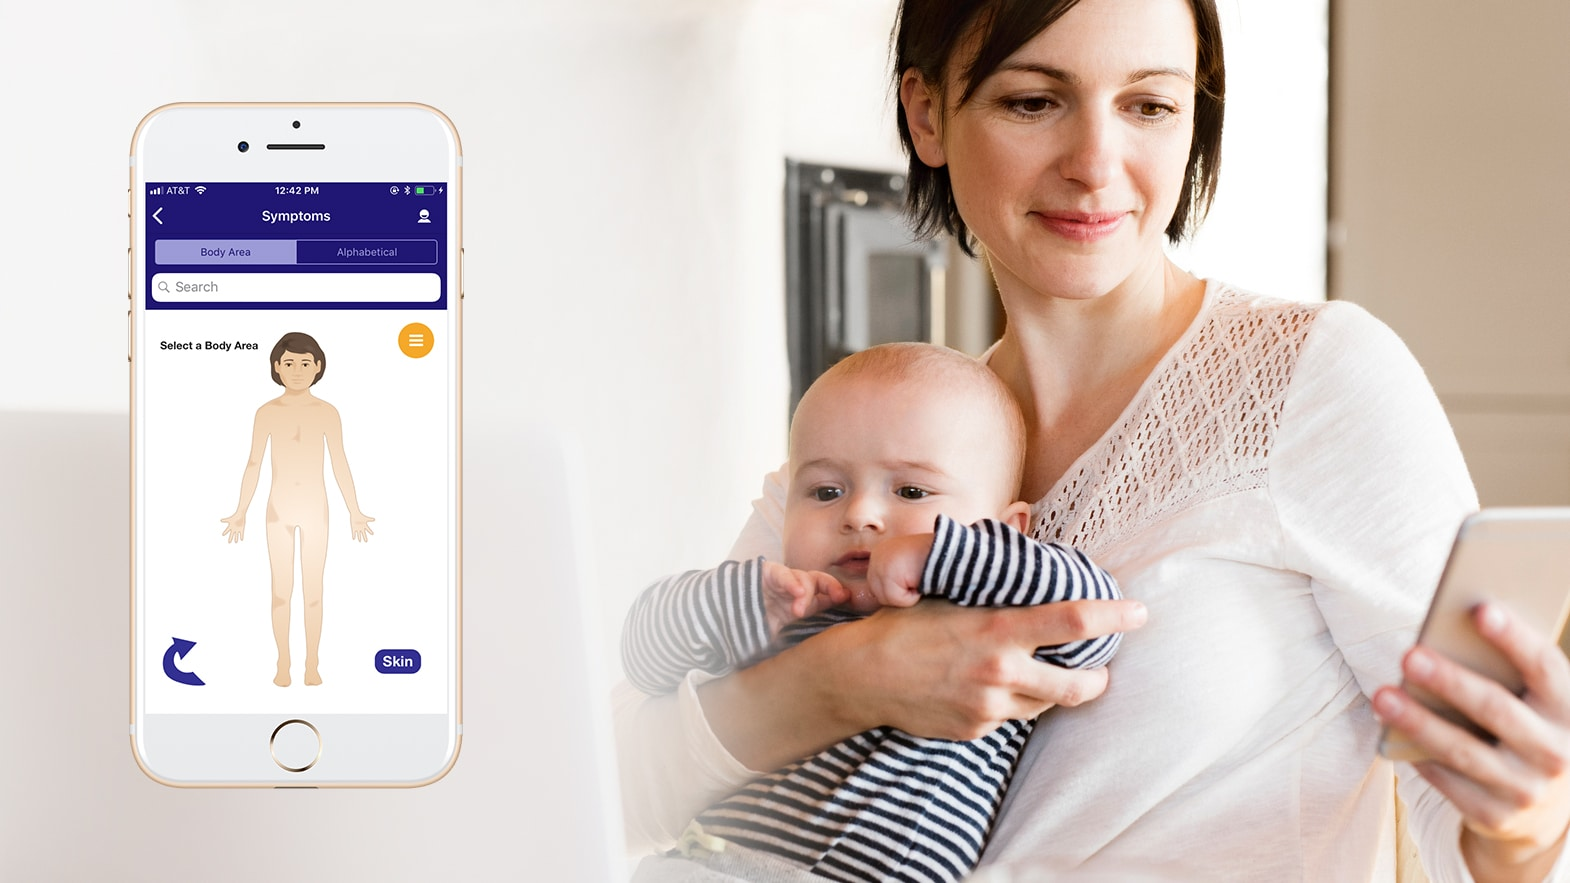 Mother with baby checking for online medical advice and using self-triage tools from AppCatalyst